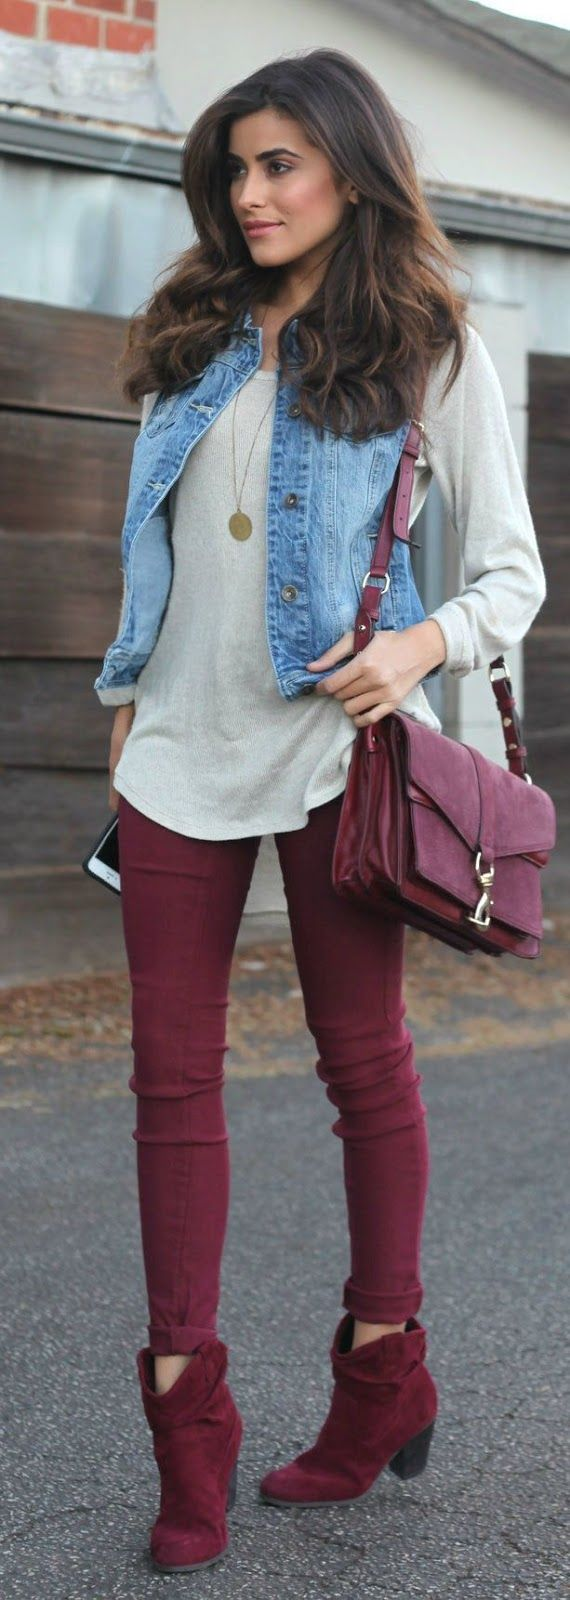 Just a Pretty Style: Street style denim jacket and burgundy pants